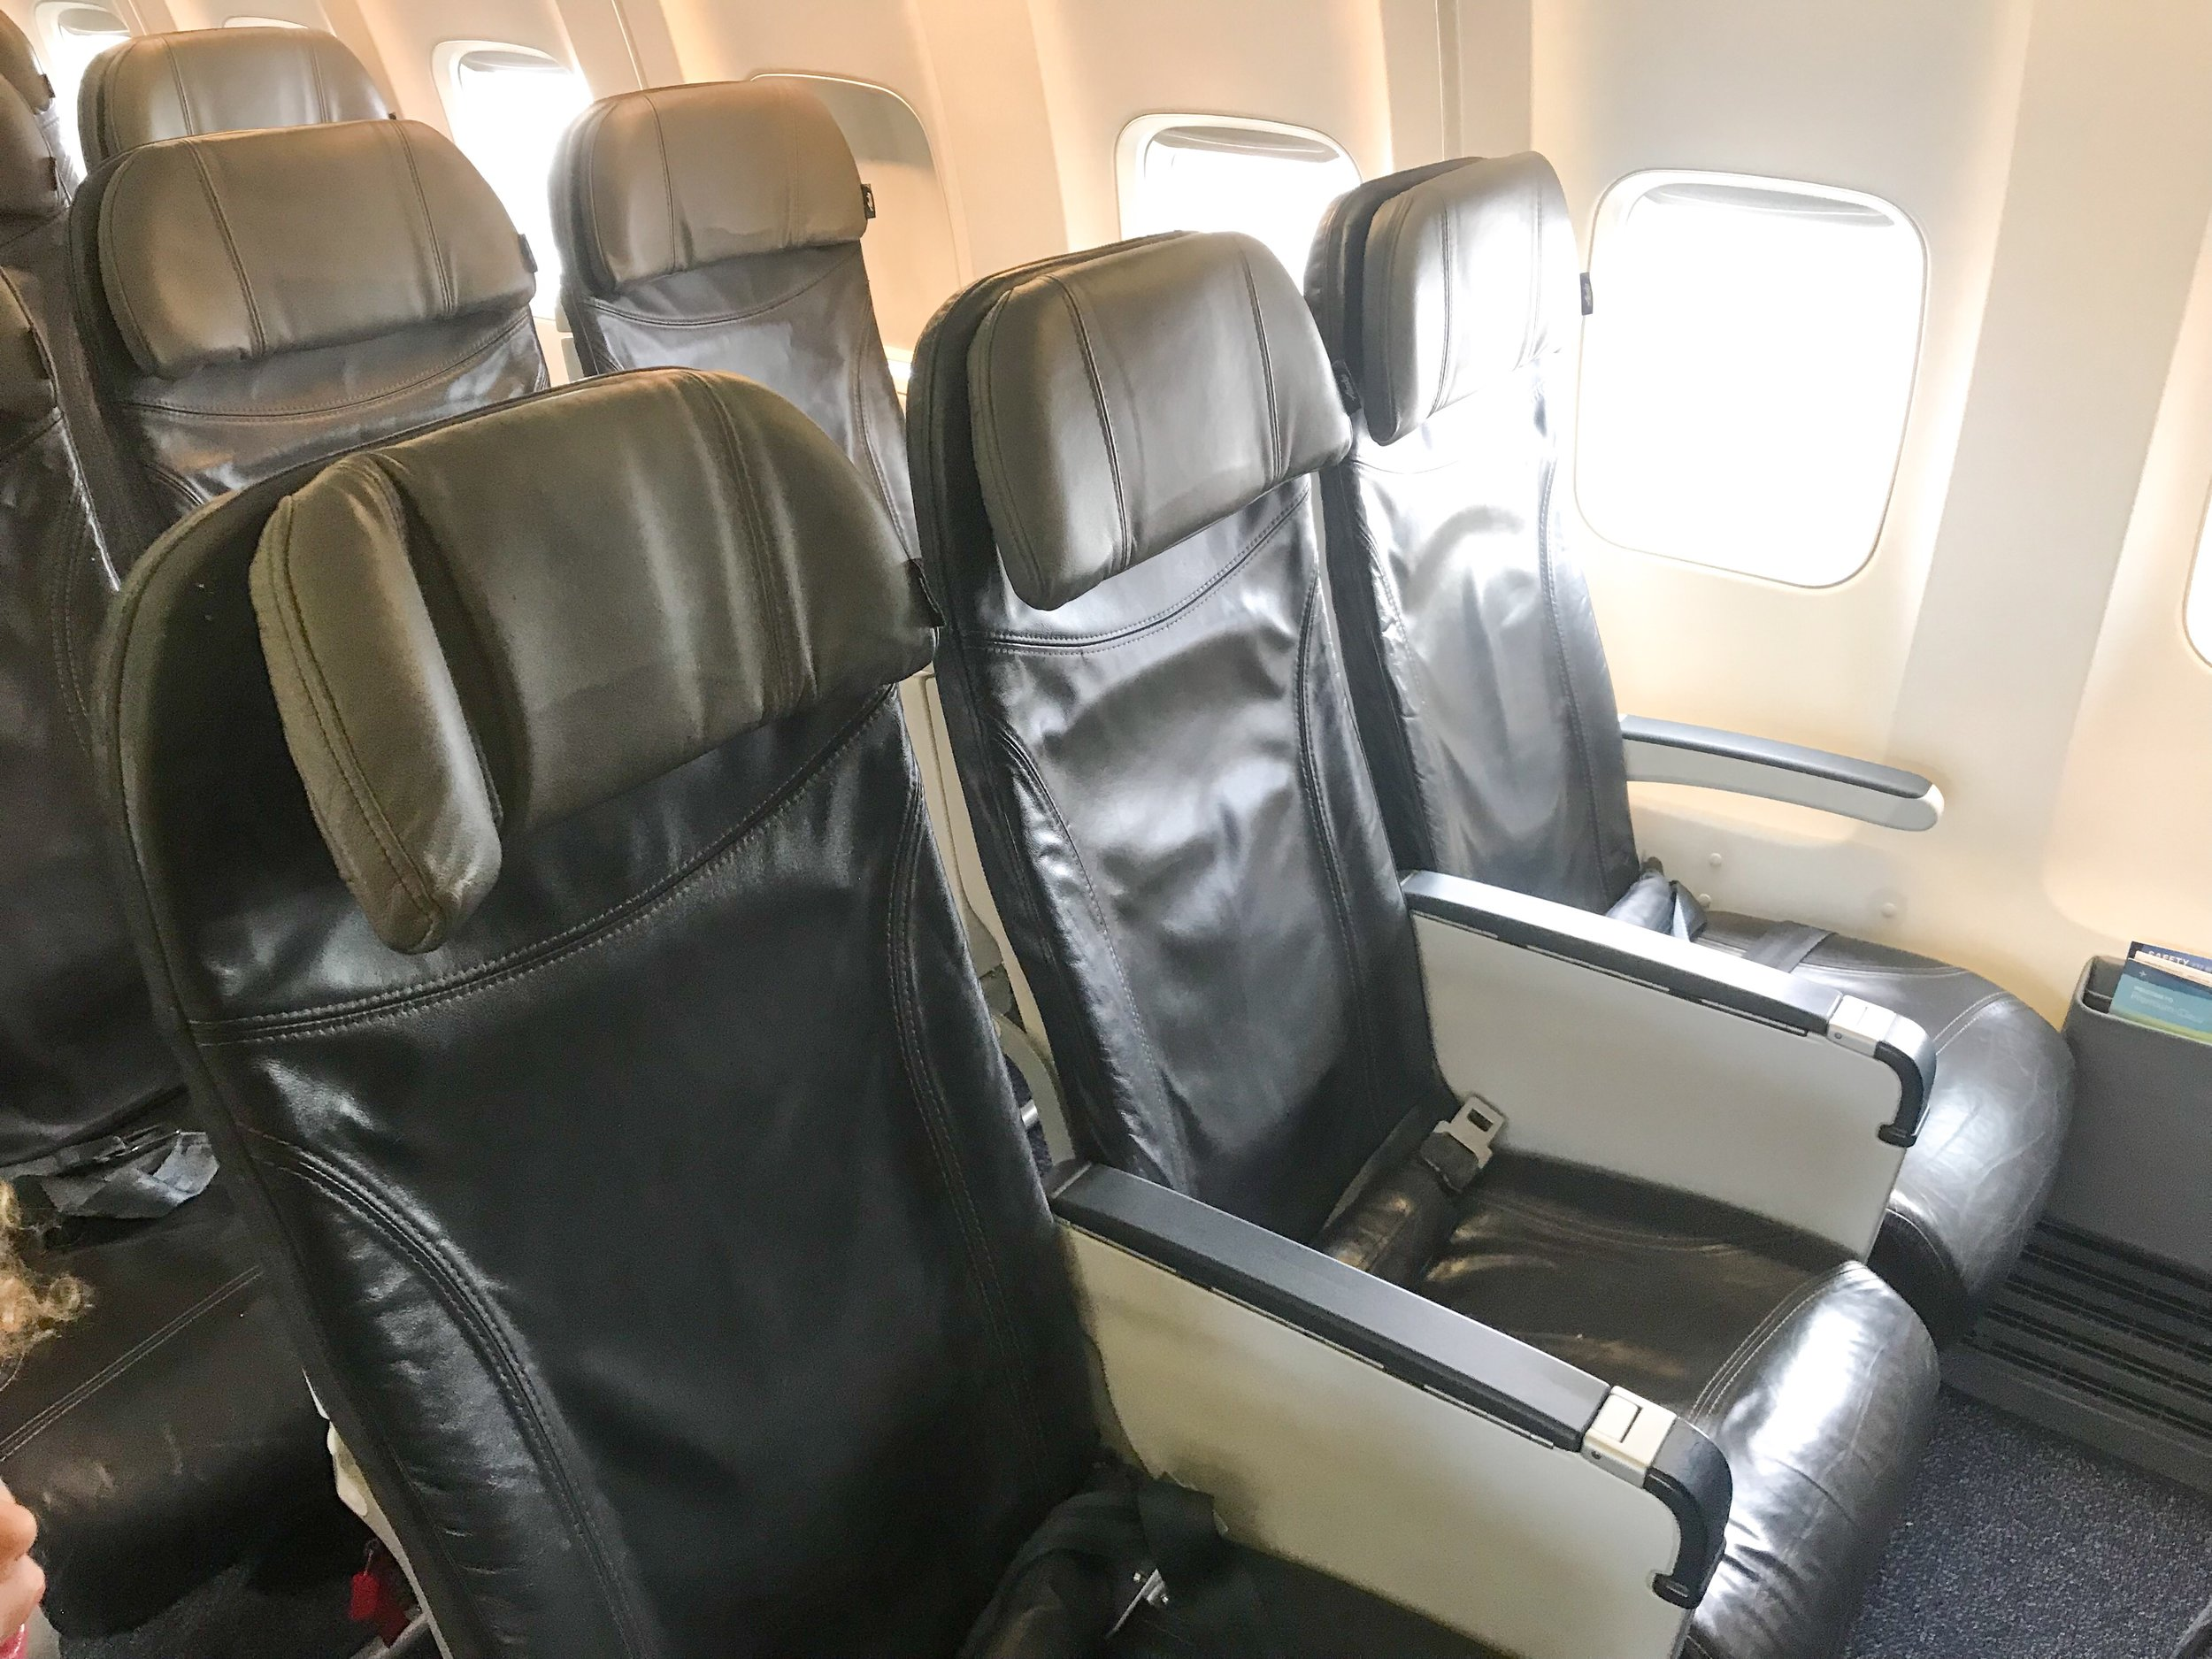 The seats feature moveable headrests. They were comfortable, but seemed slightly worn down and tired. There is no seat back Inflight Entertainment system, but free streaming content is available to personal devices.